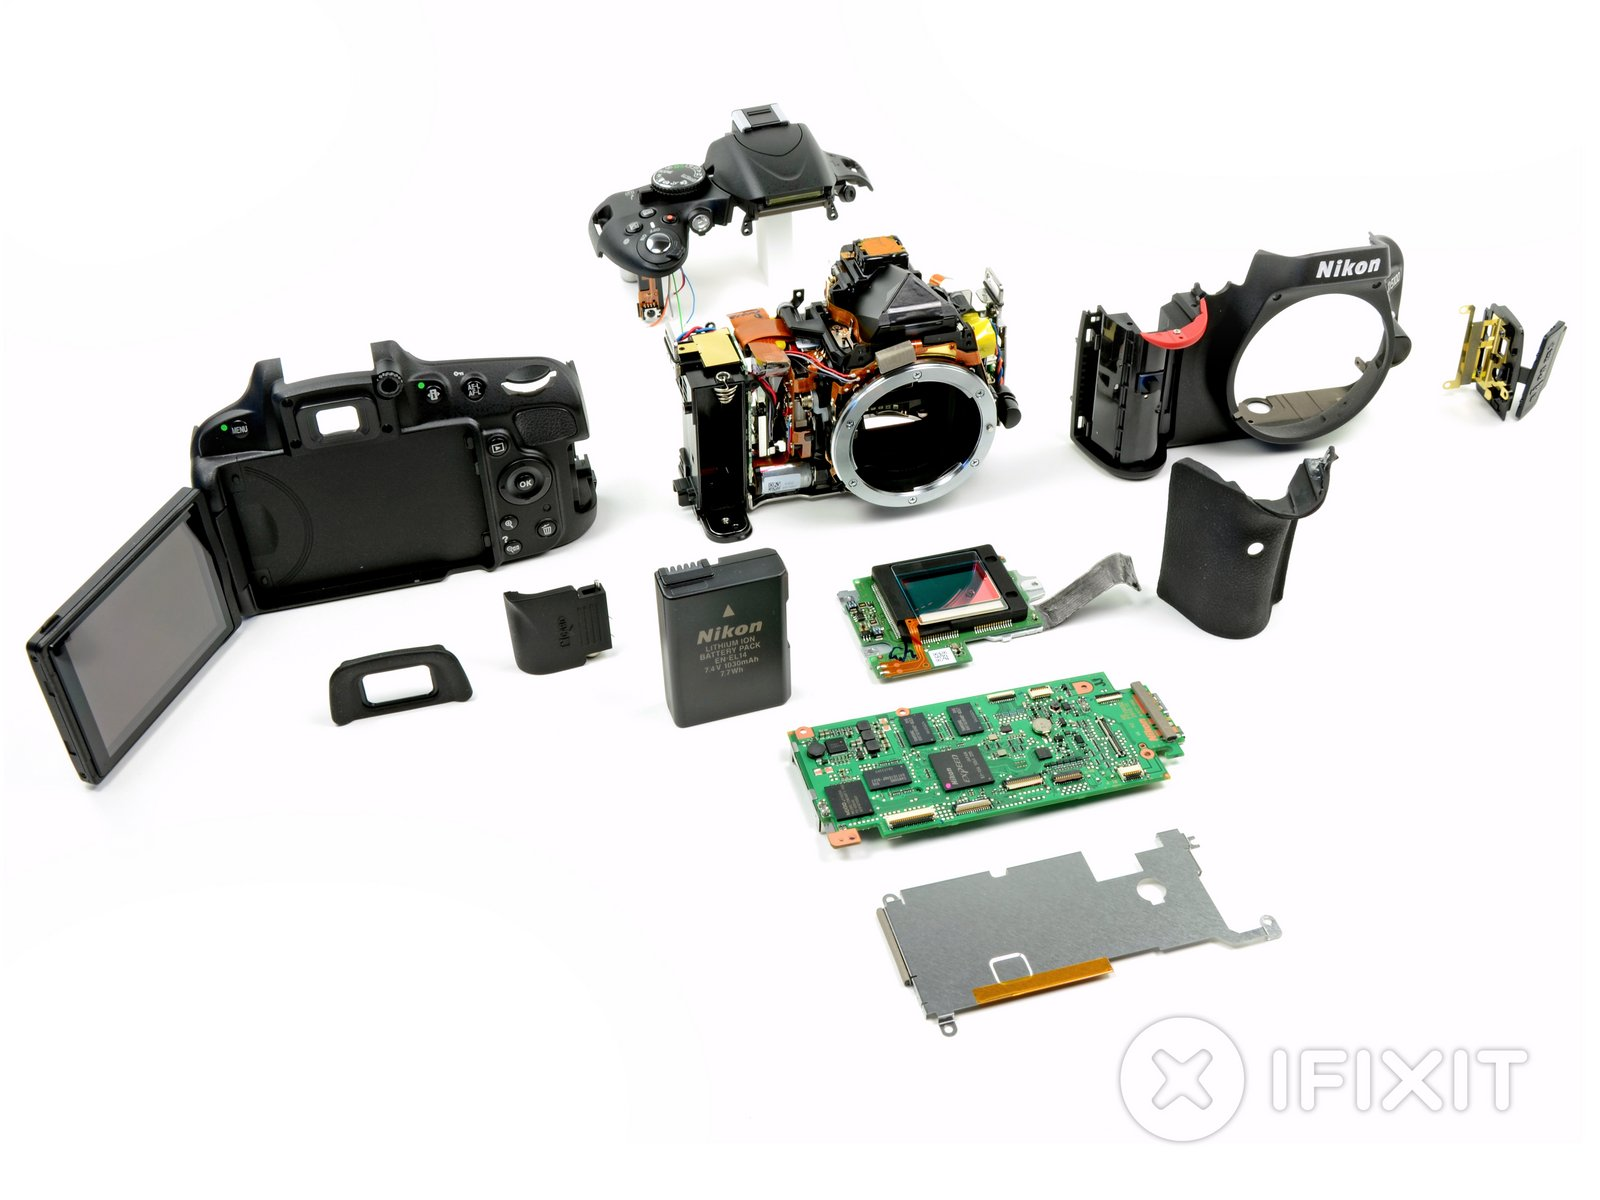 Nikon D5100 Teardown Ifixit Off If You Tip The Camera Over This Fully Exposes Flash Circuit